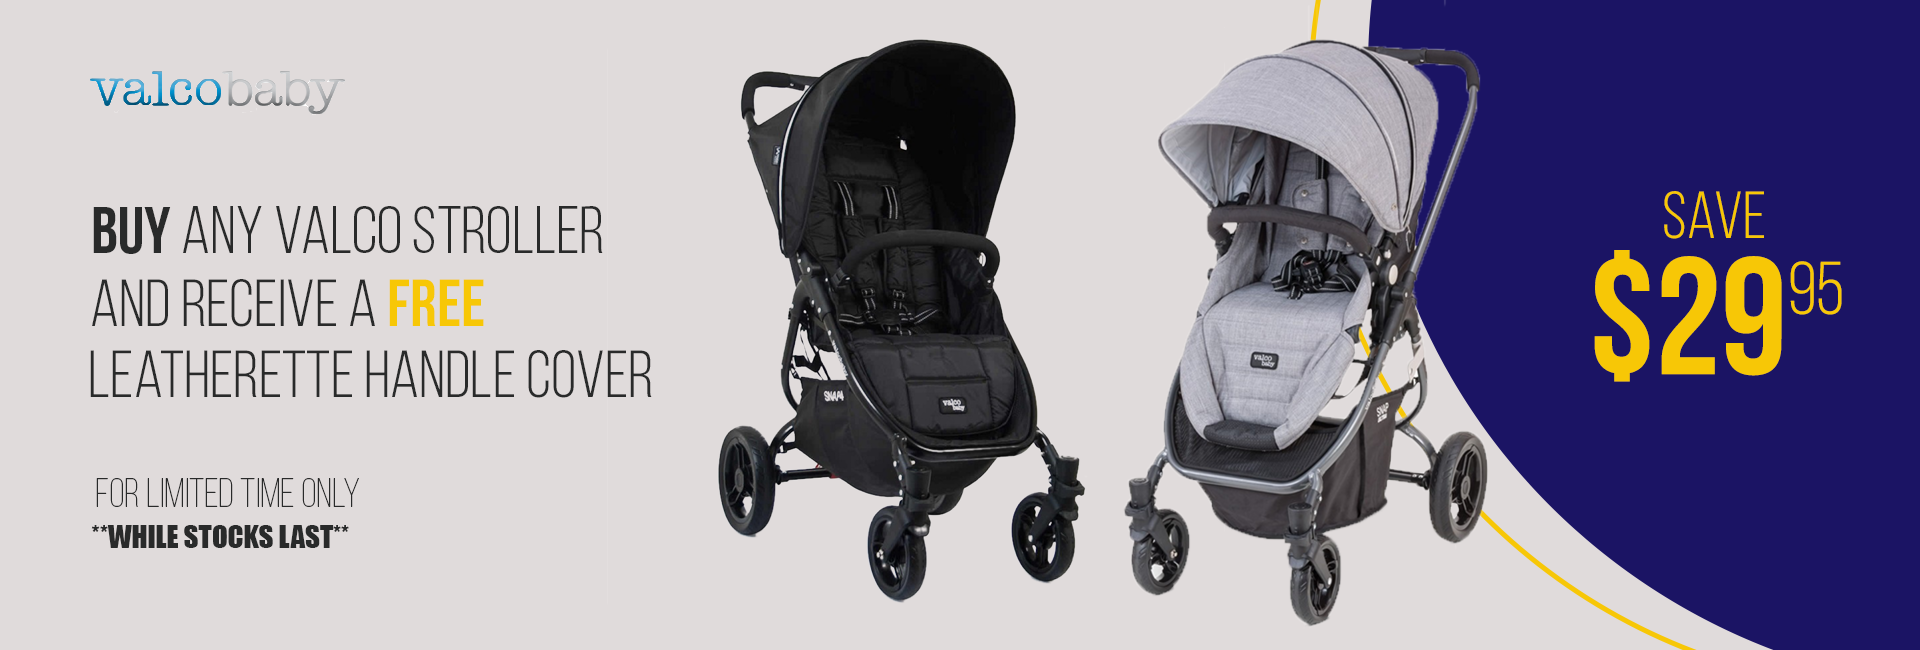 Valco Stroller Special Deal